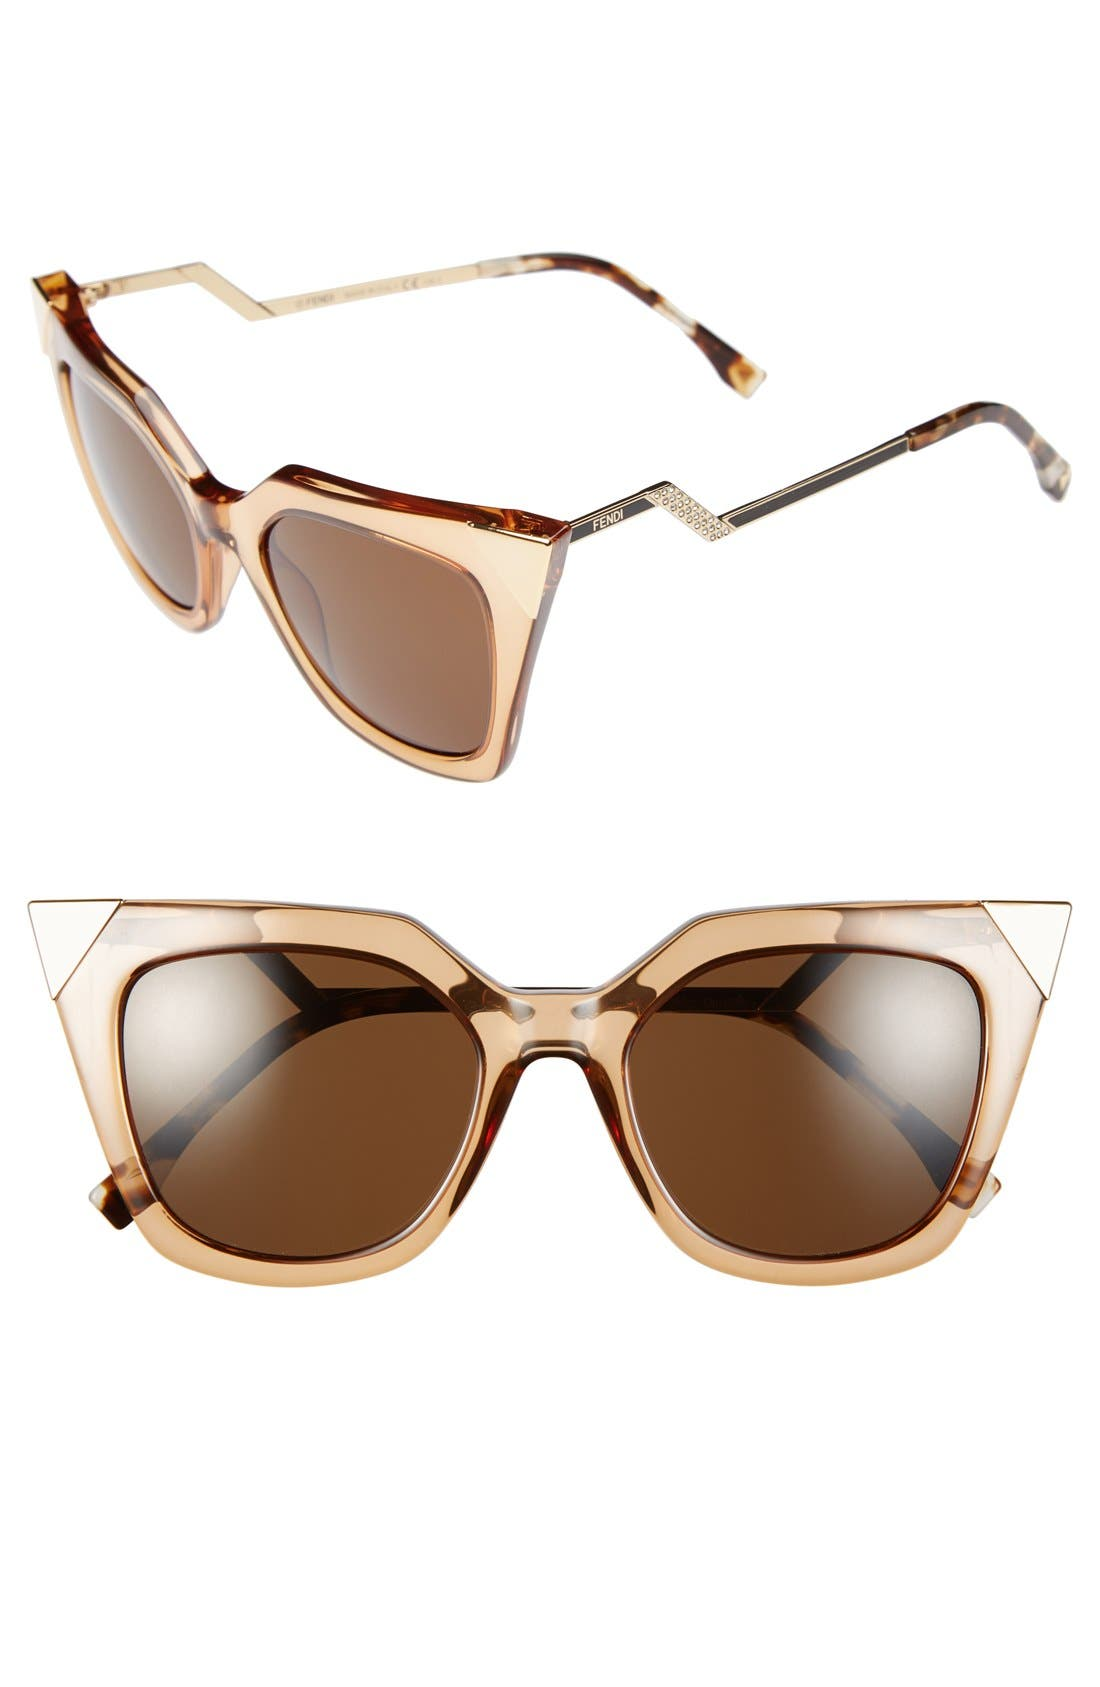 FENDI 52mm Cat Eye Sunglasses